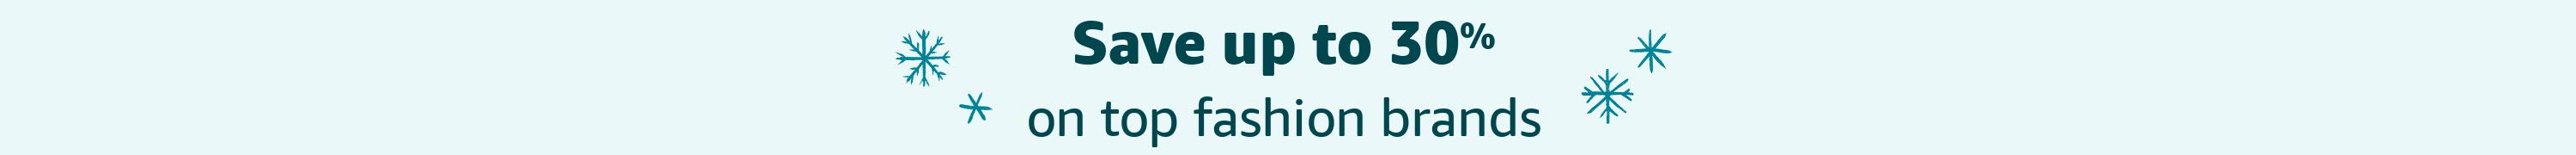 Save up to 30% on top fashion brands